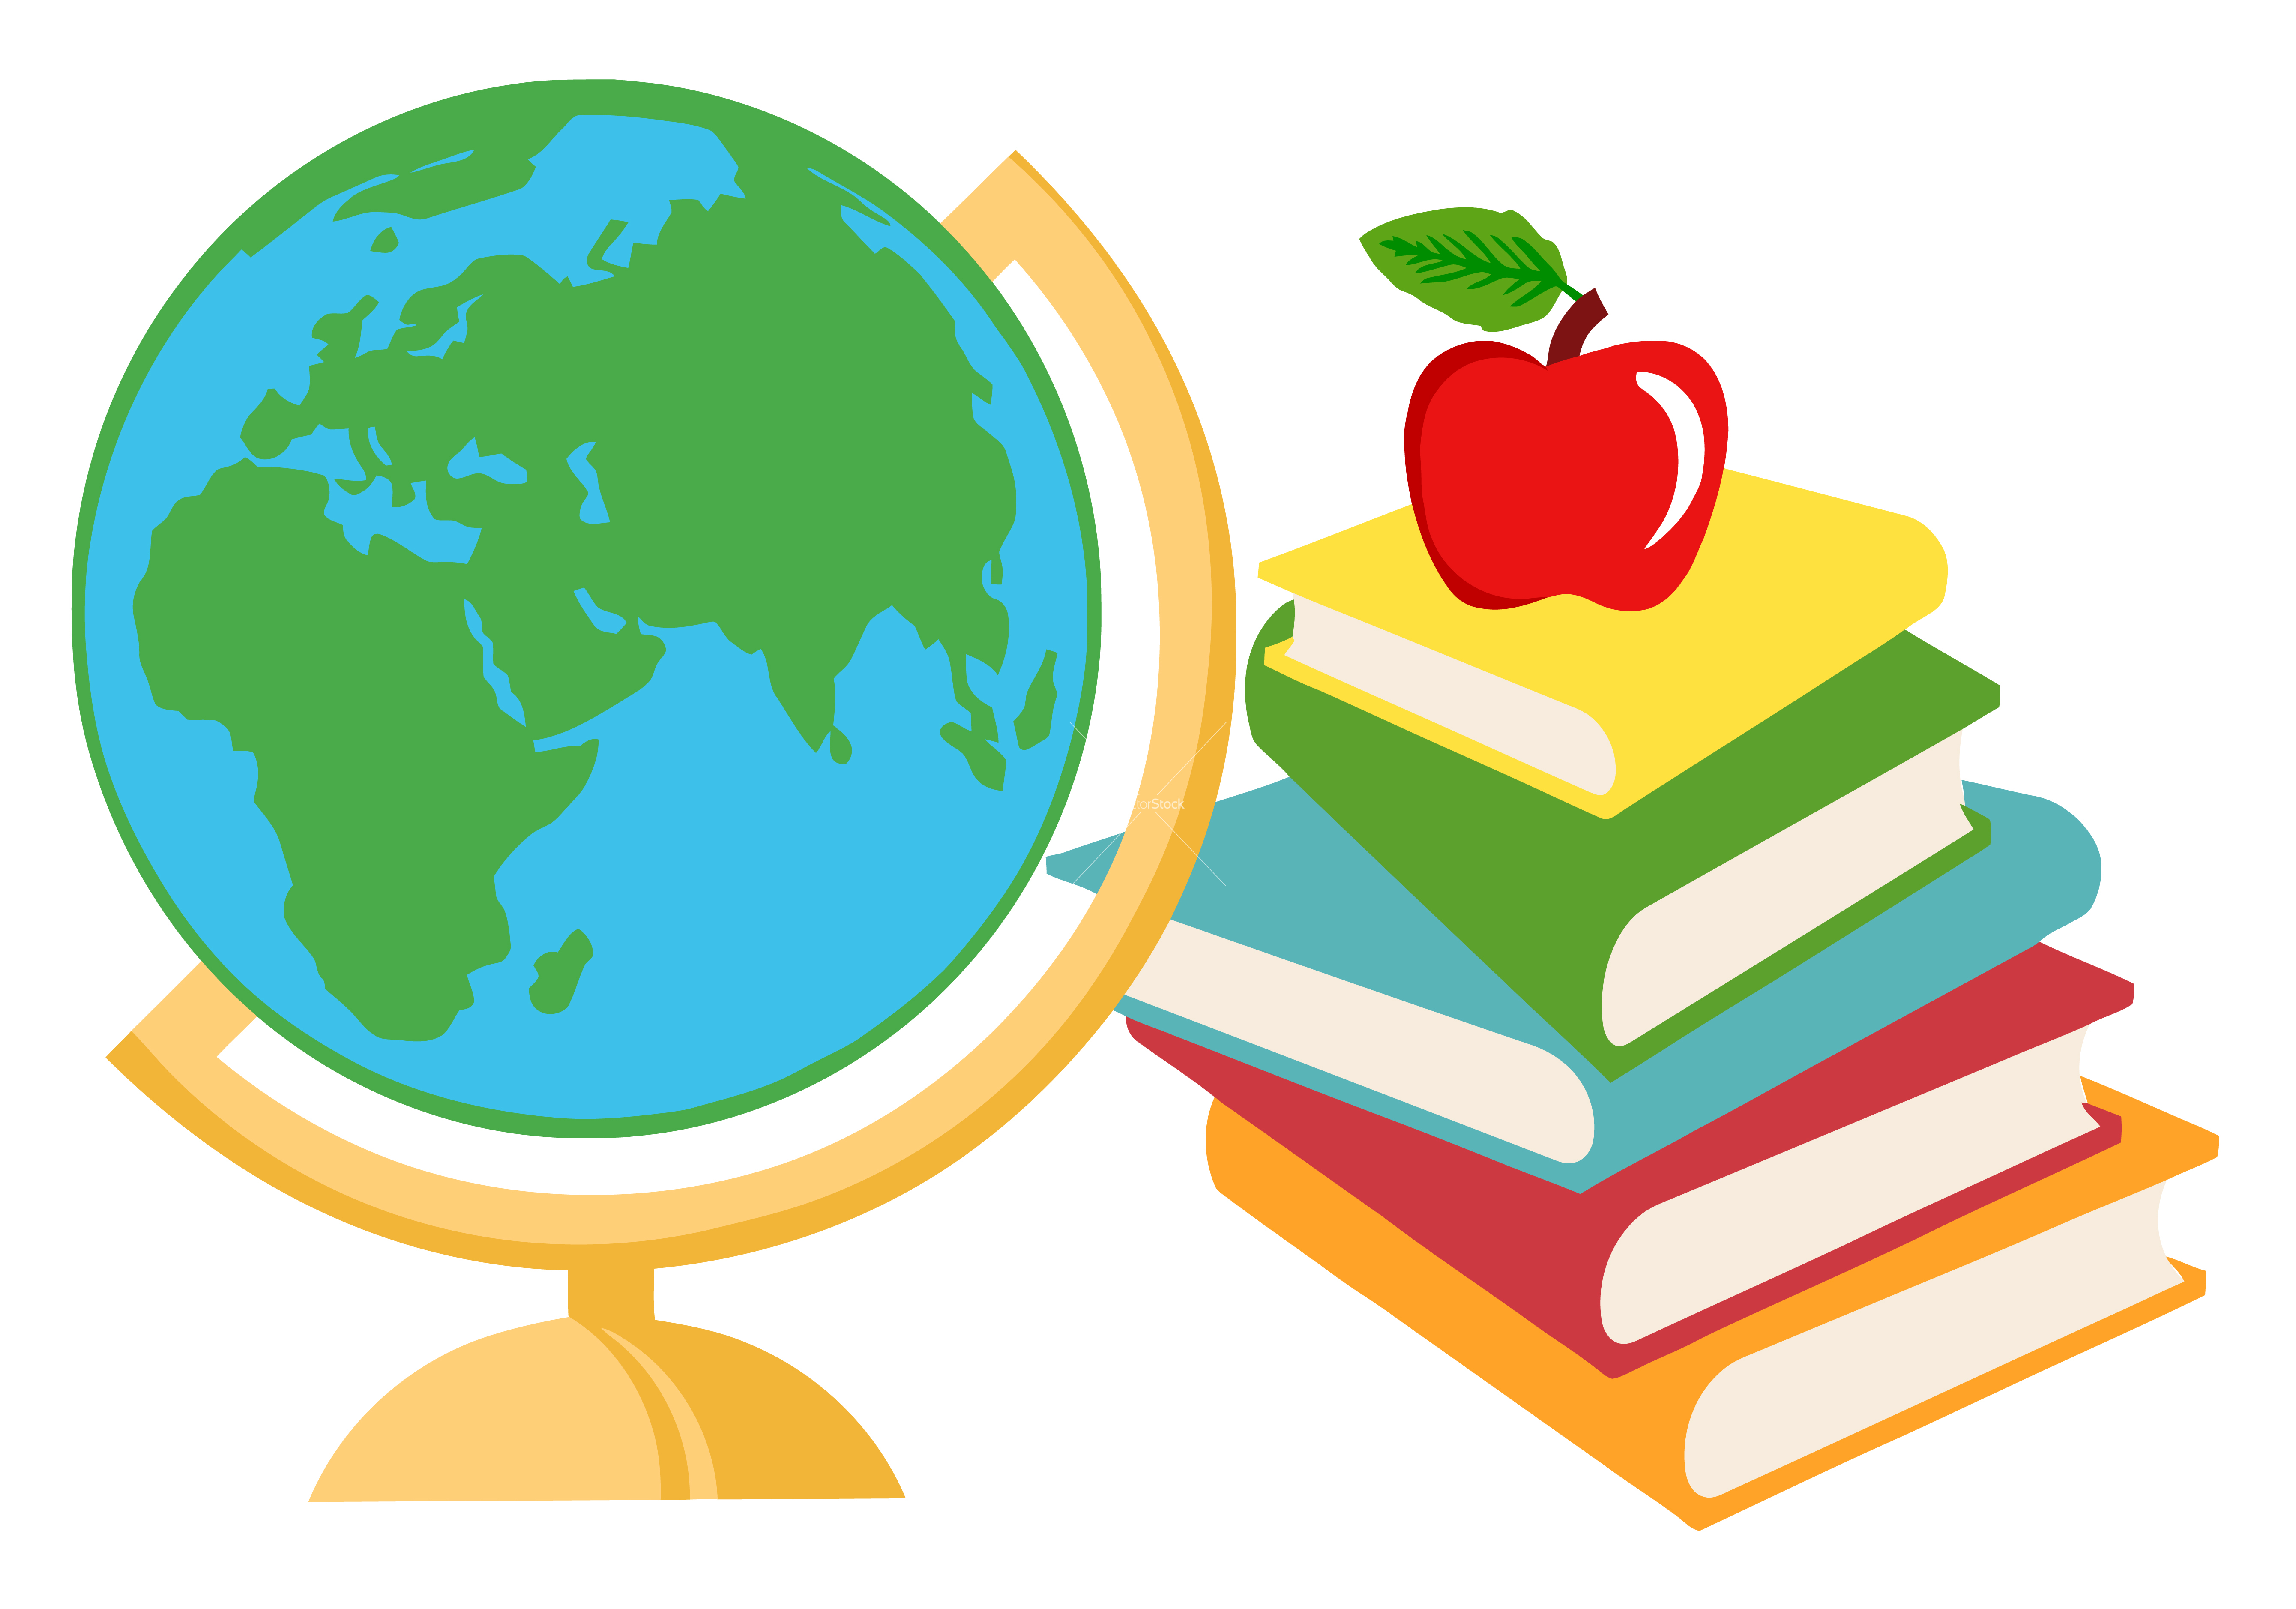 Geography clipart globe Art School Inspiration Geography Cliparts